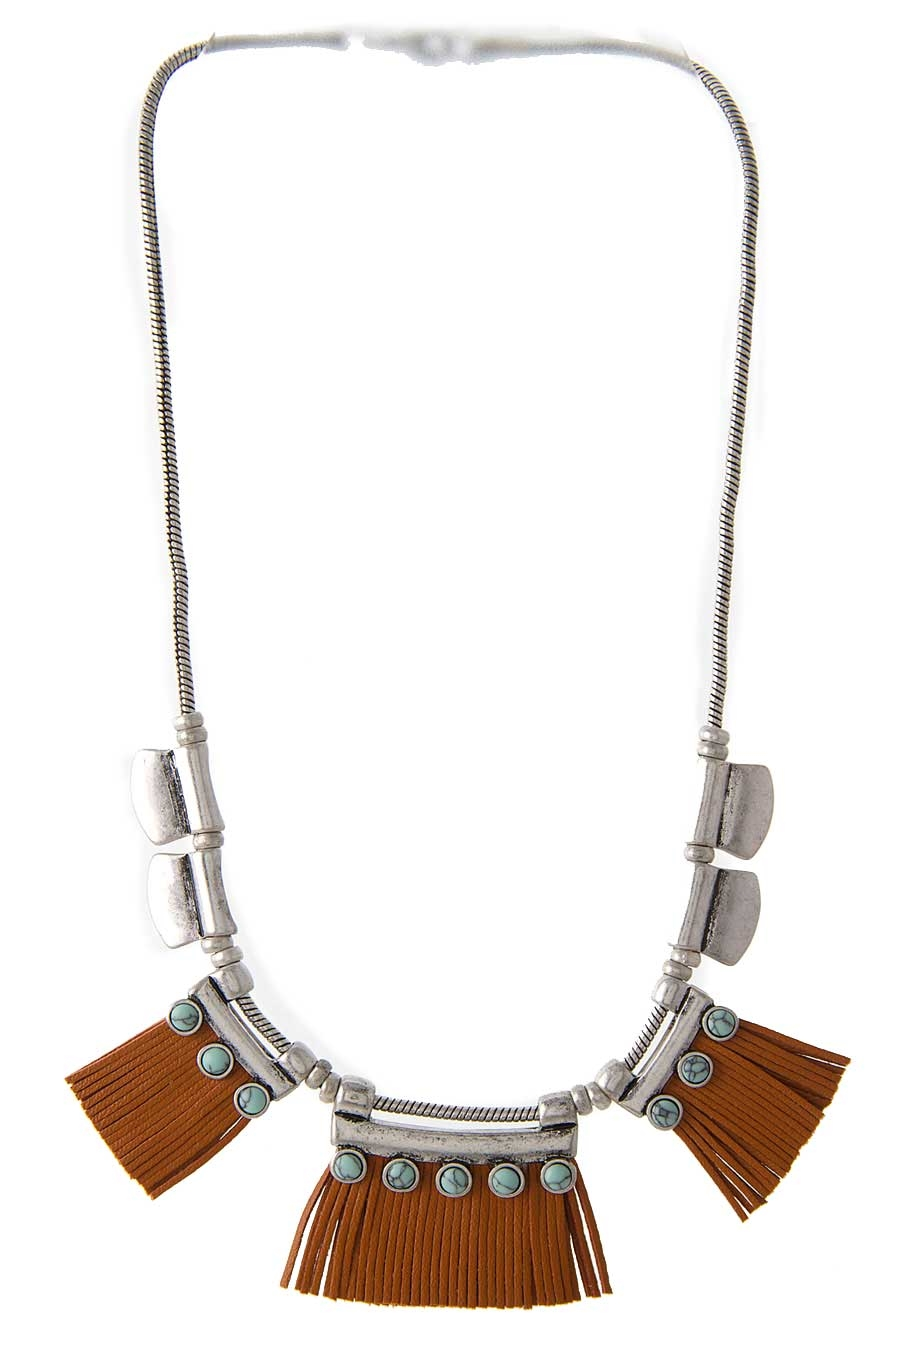 BOHO LEATHER BIB NECKLACE SET - orangeshine.com